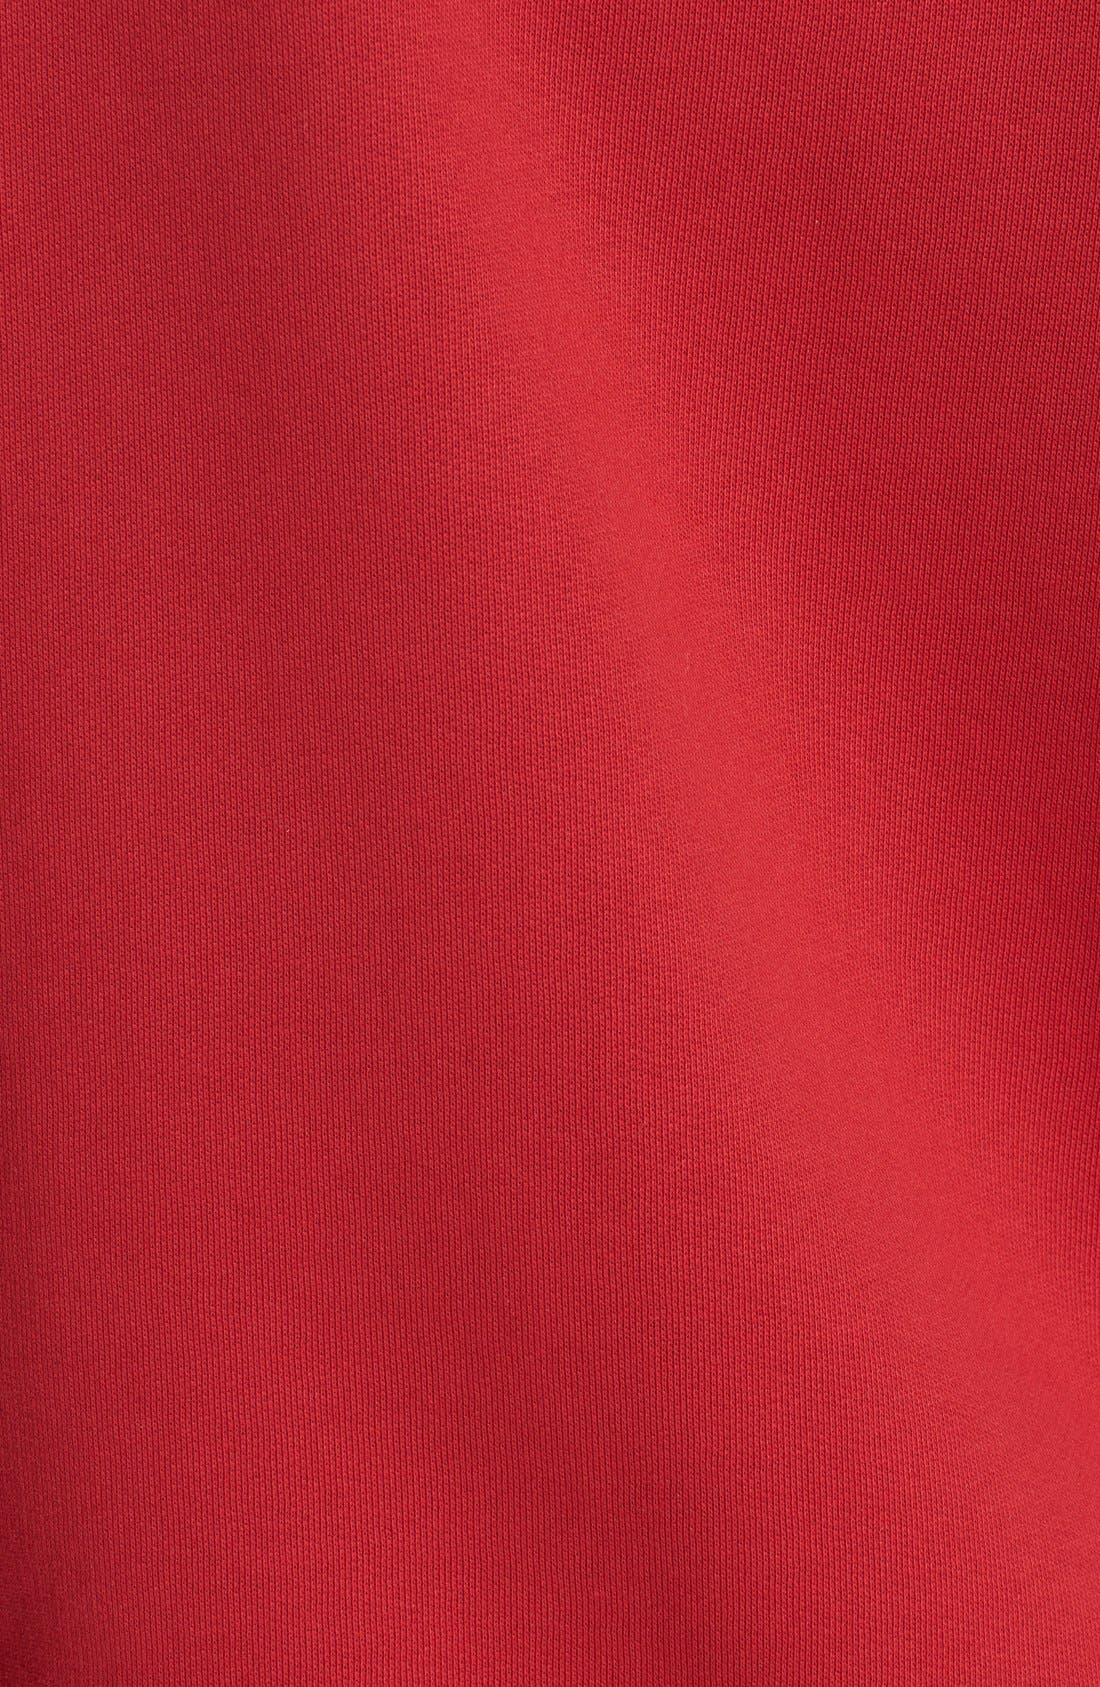 Check Print Hoodie,                             Alternate thumbnail 7, color,                             PARADE RED